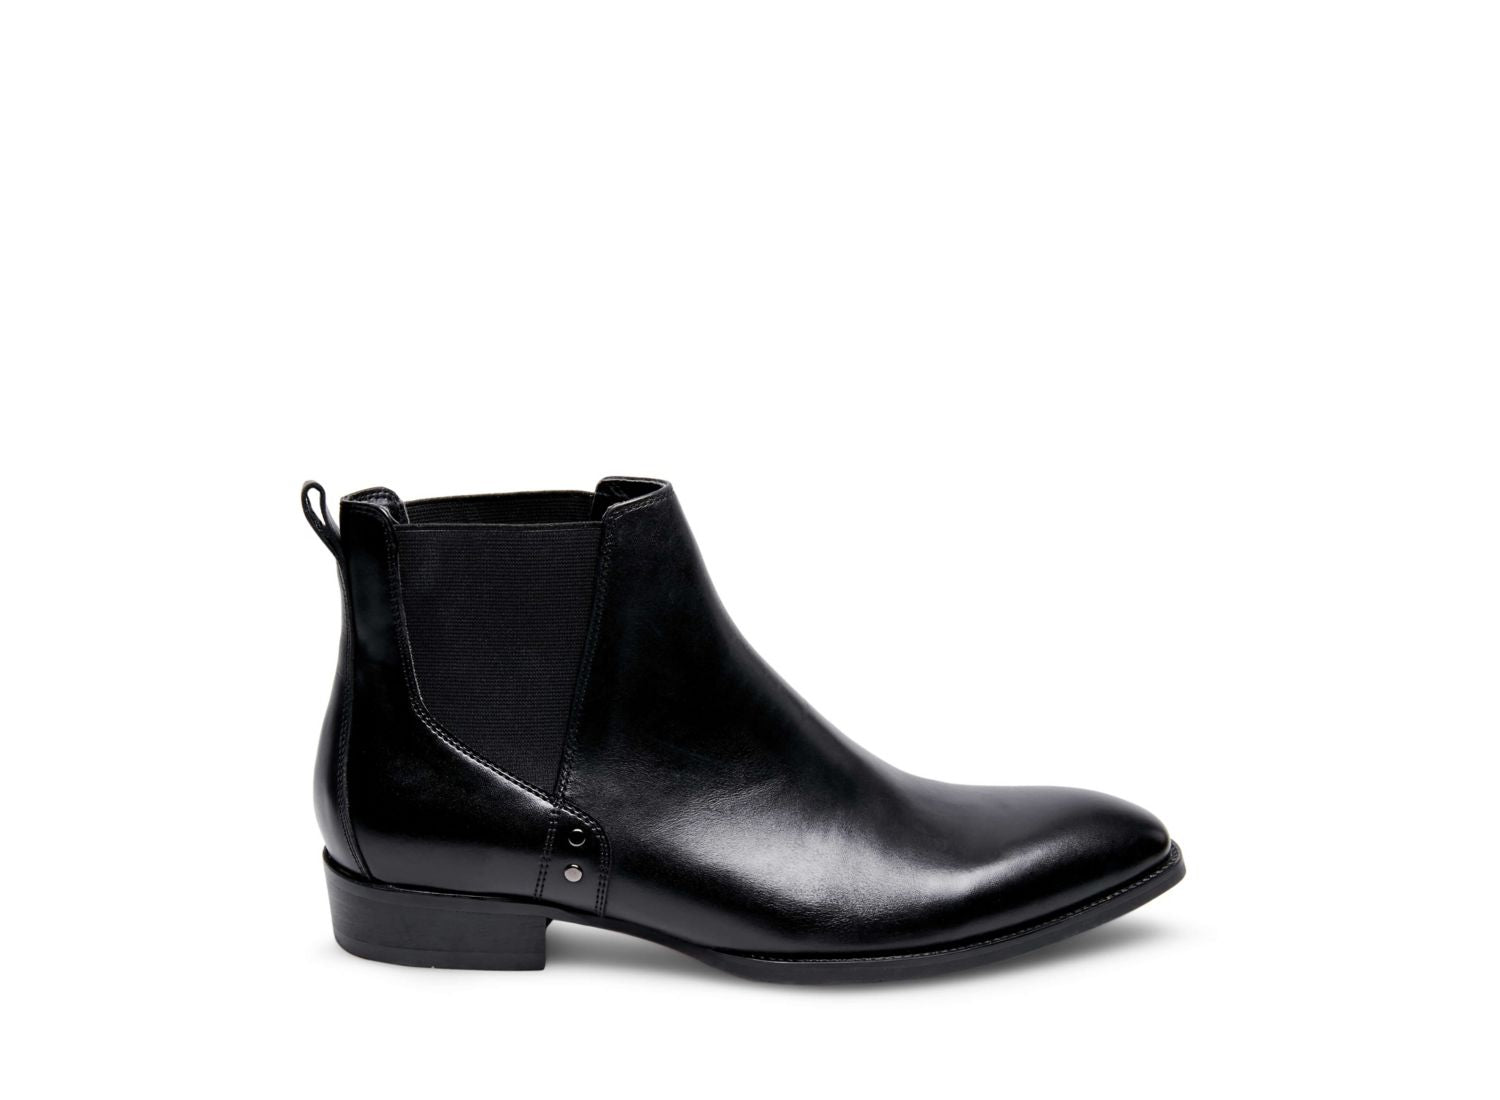 SIMON BLACK LEATHER - Steve Madden